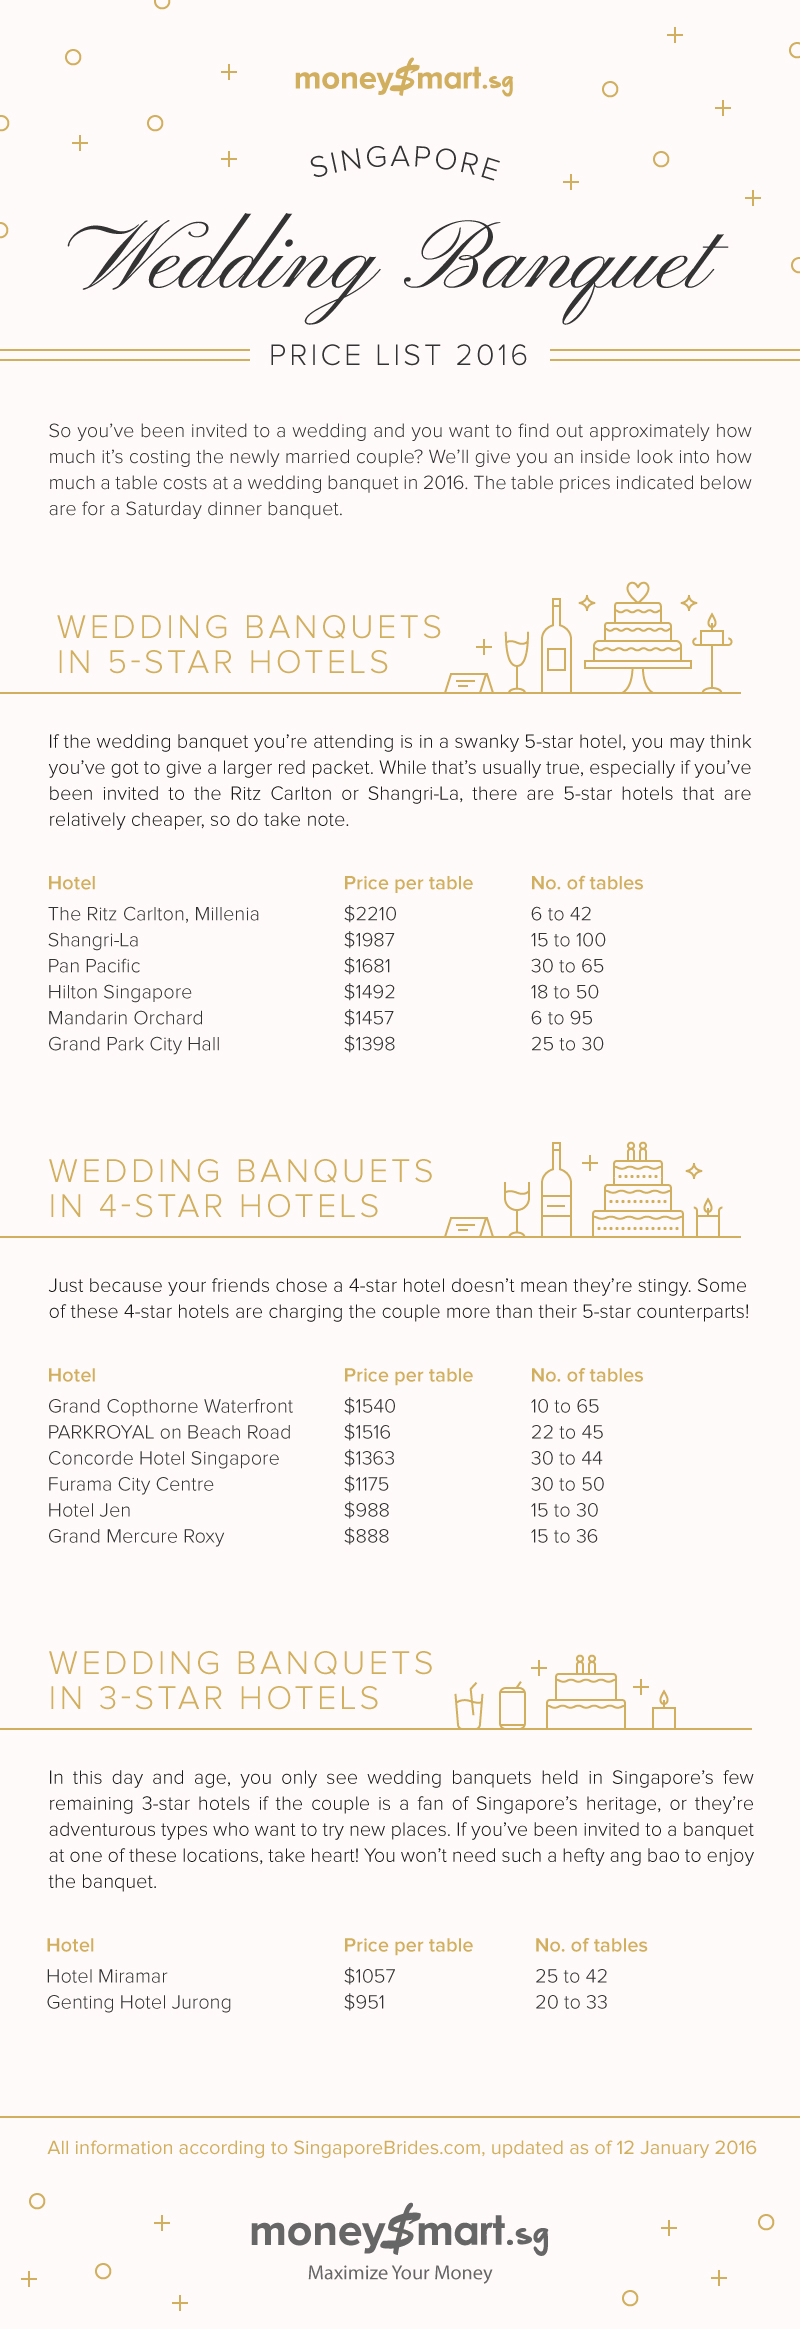 Wedding Banquet Price List 2016